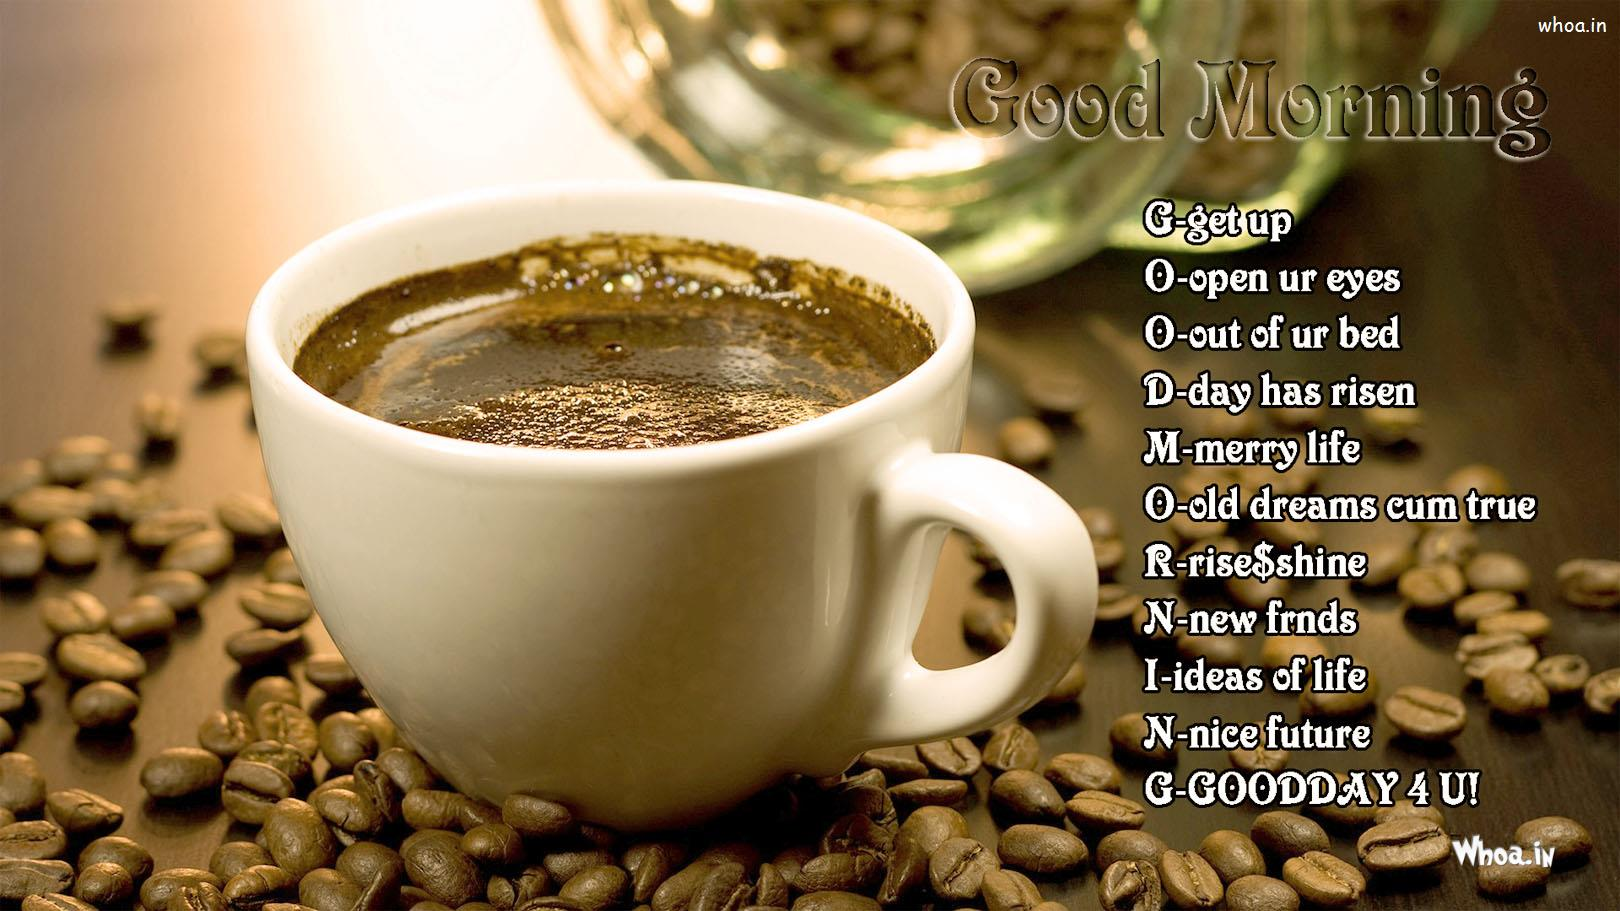 Hd wallpaper good morning -  Hd Wallpaper Good Morning And Cup Of Coffee With Good Morning Quotes Wallpaper